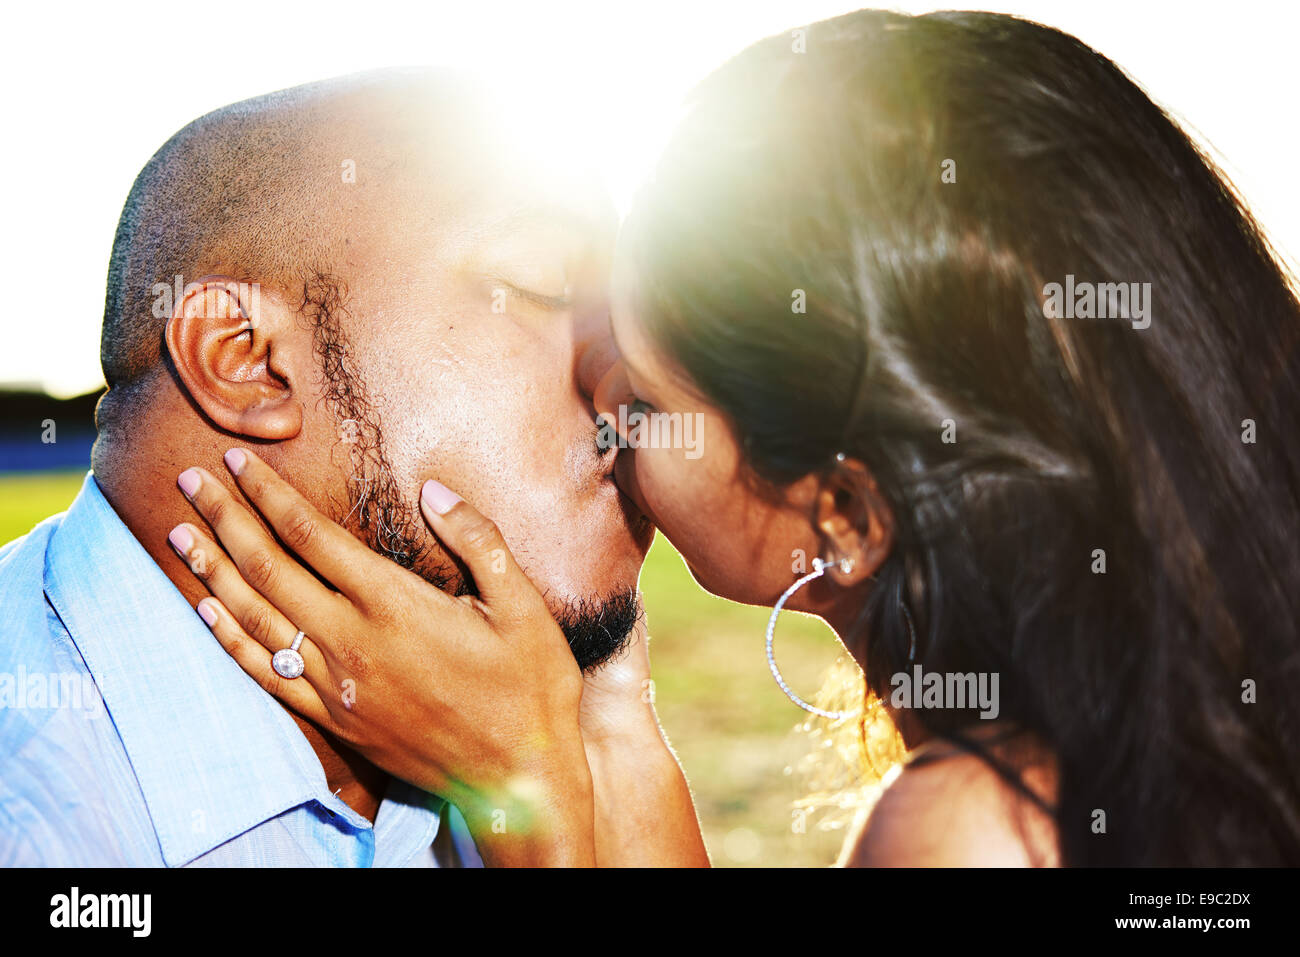 Couple kissing with womens hand on mans face showing diamond ring with the sun behind them setting - Stock Image